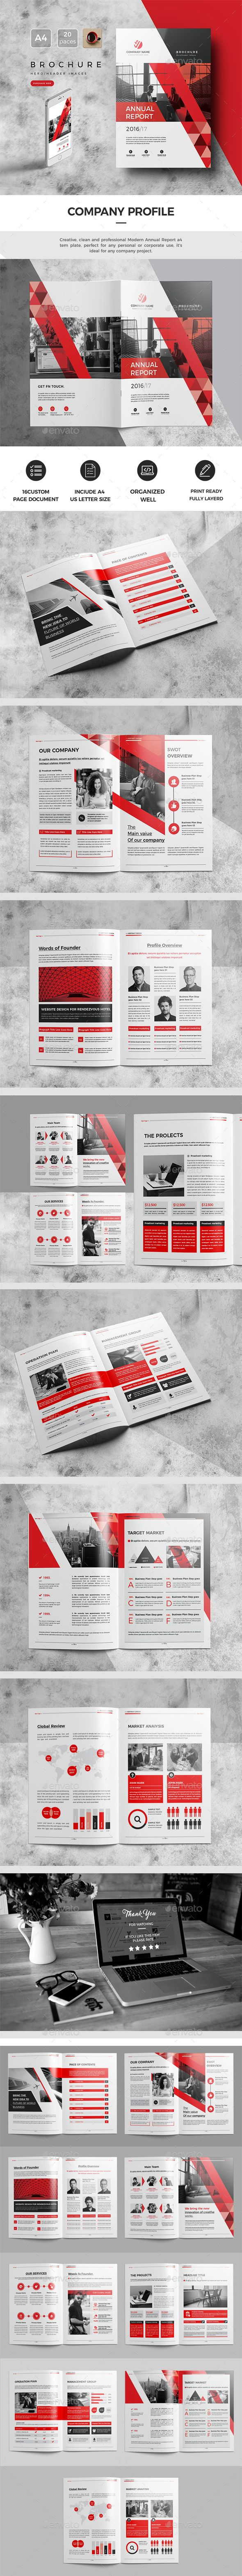 Company Profile Design Template 2017 - Catalogs Brochures Design Template InDesign INDD. Download here: https://graphicriver.net/item/company-profile-2017/19445995?ref=yinkira